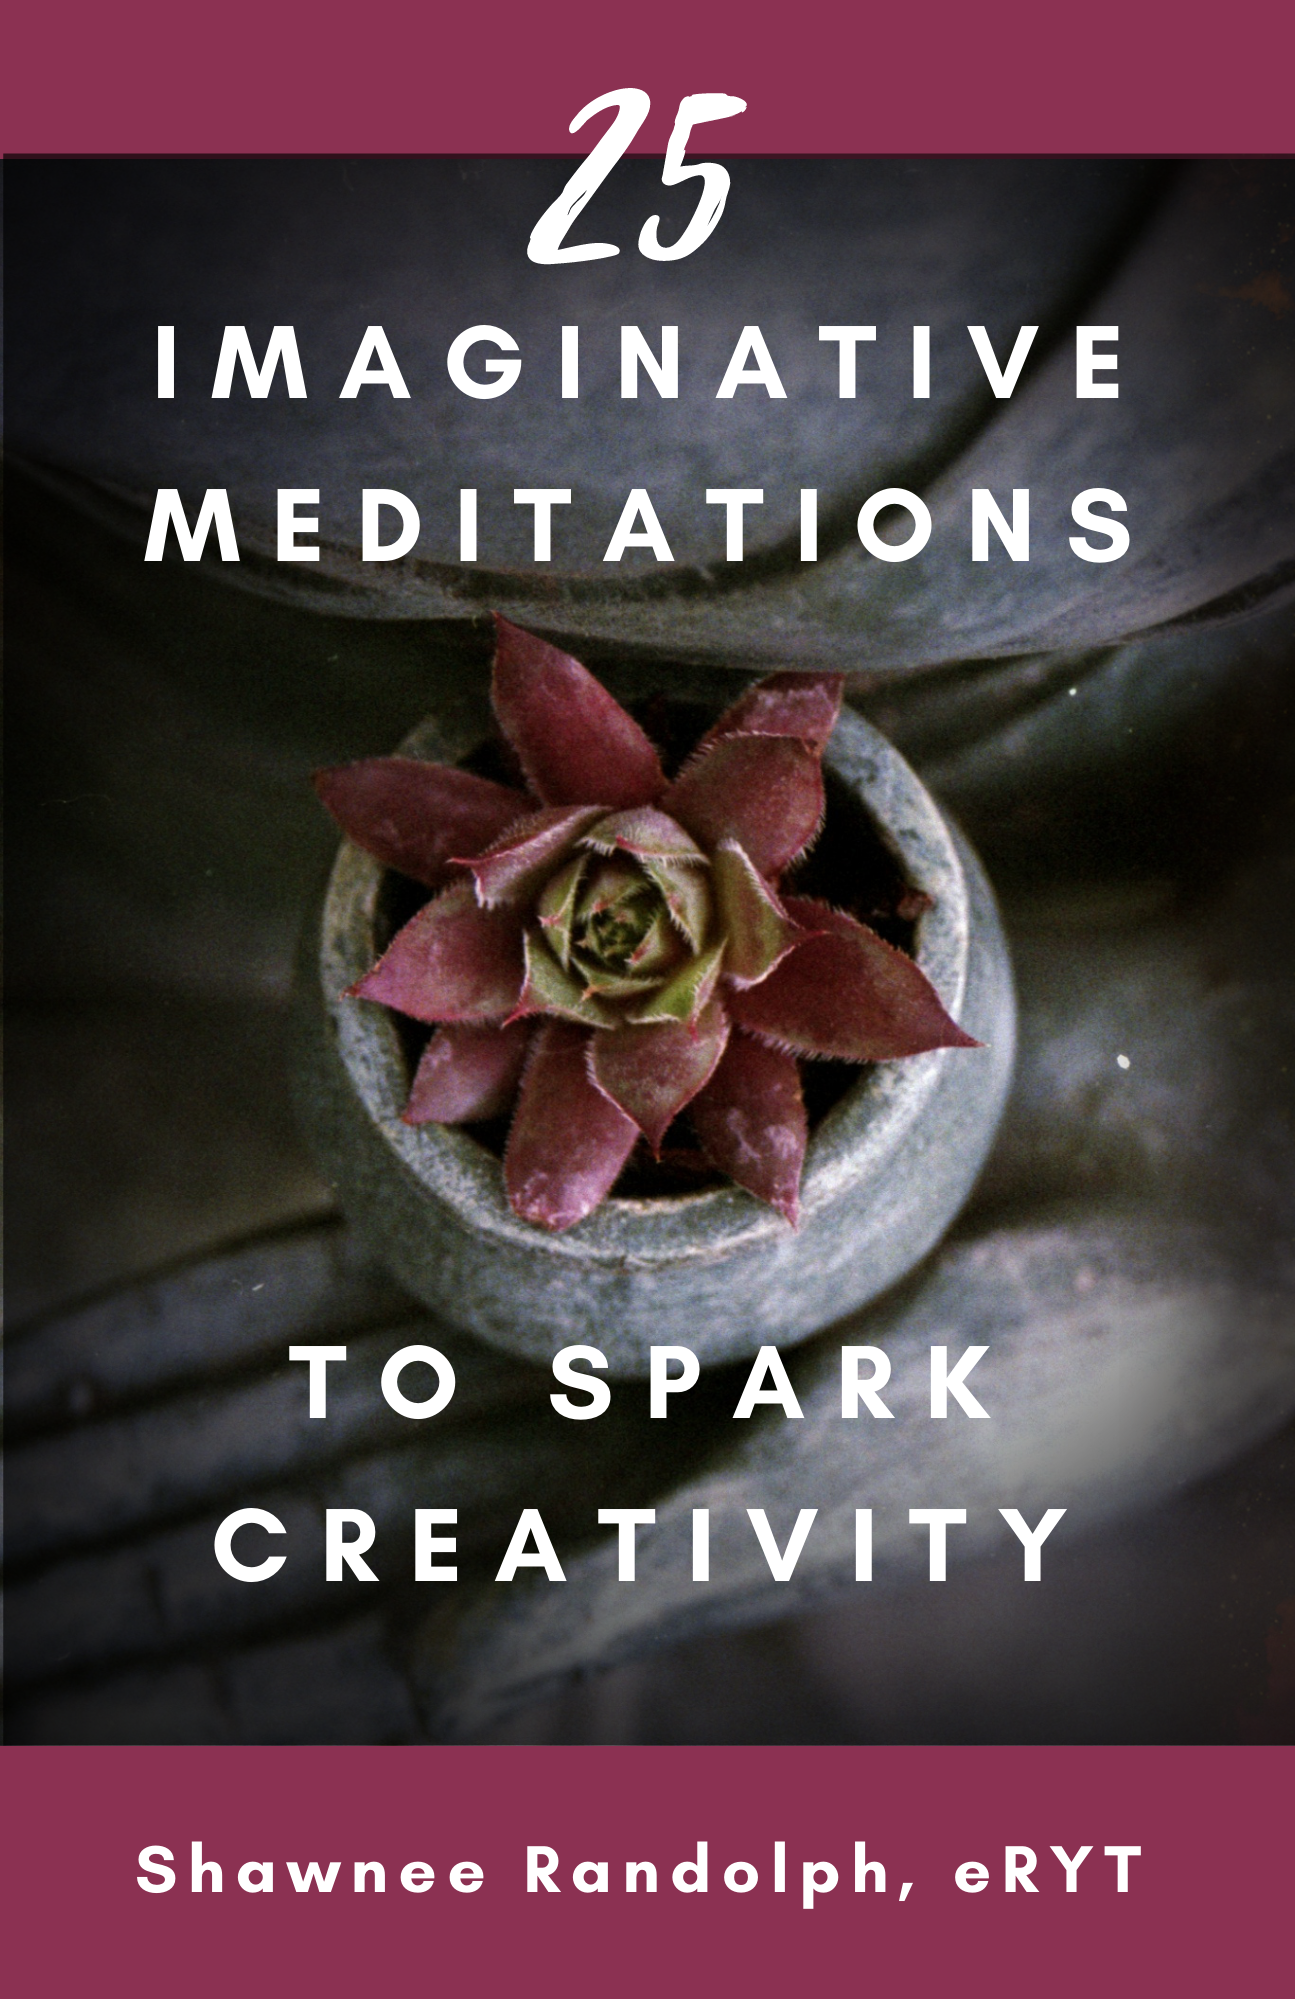 25 Imaginative Meditations to Spark Creativity